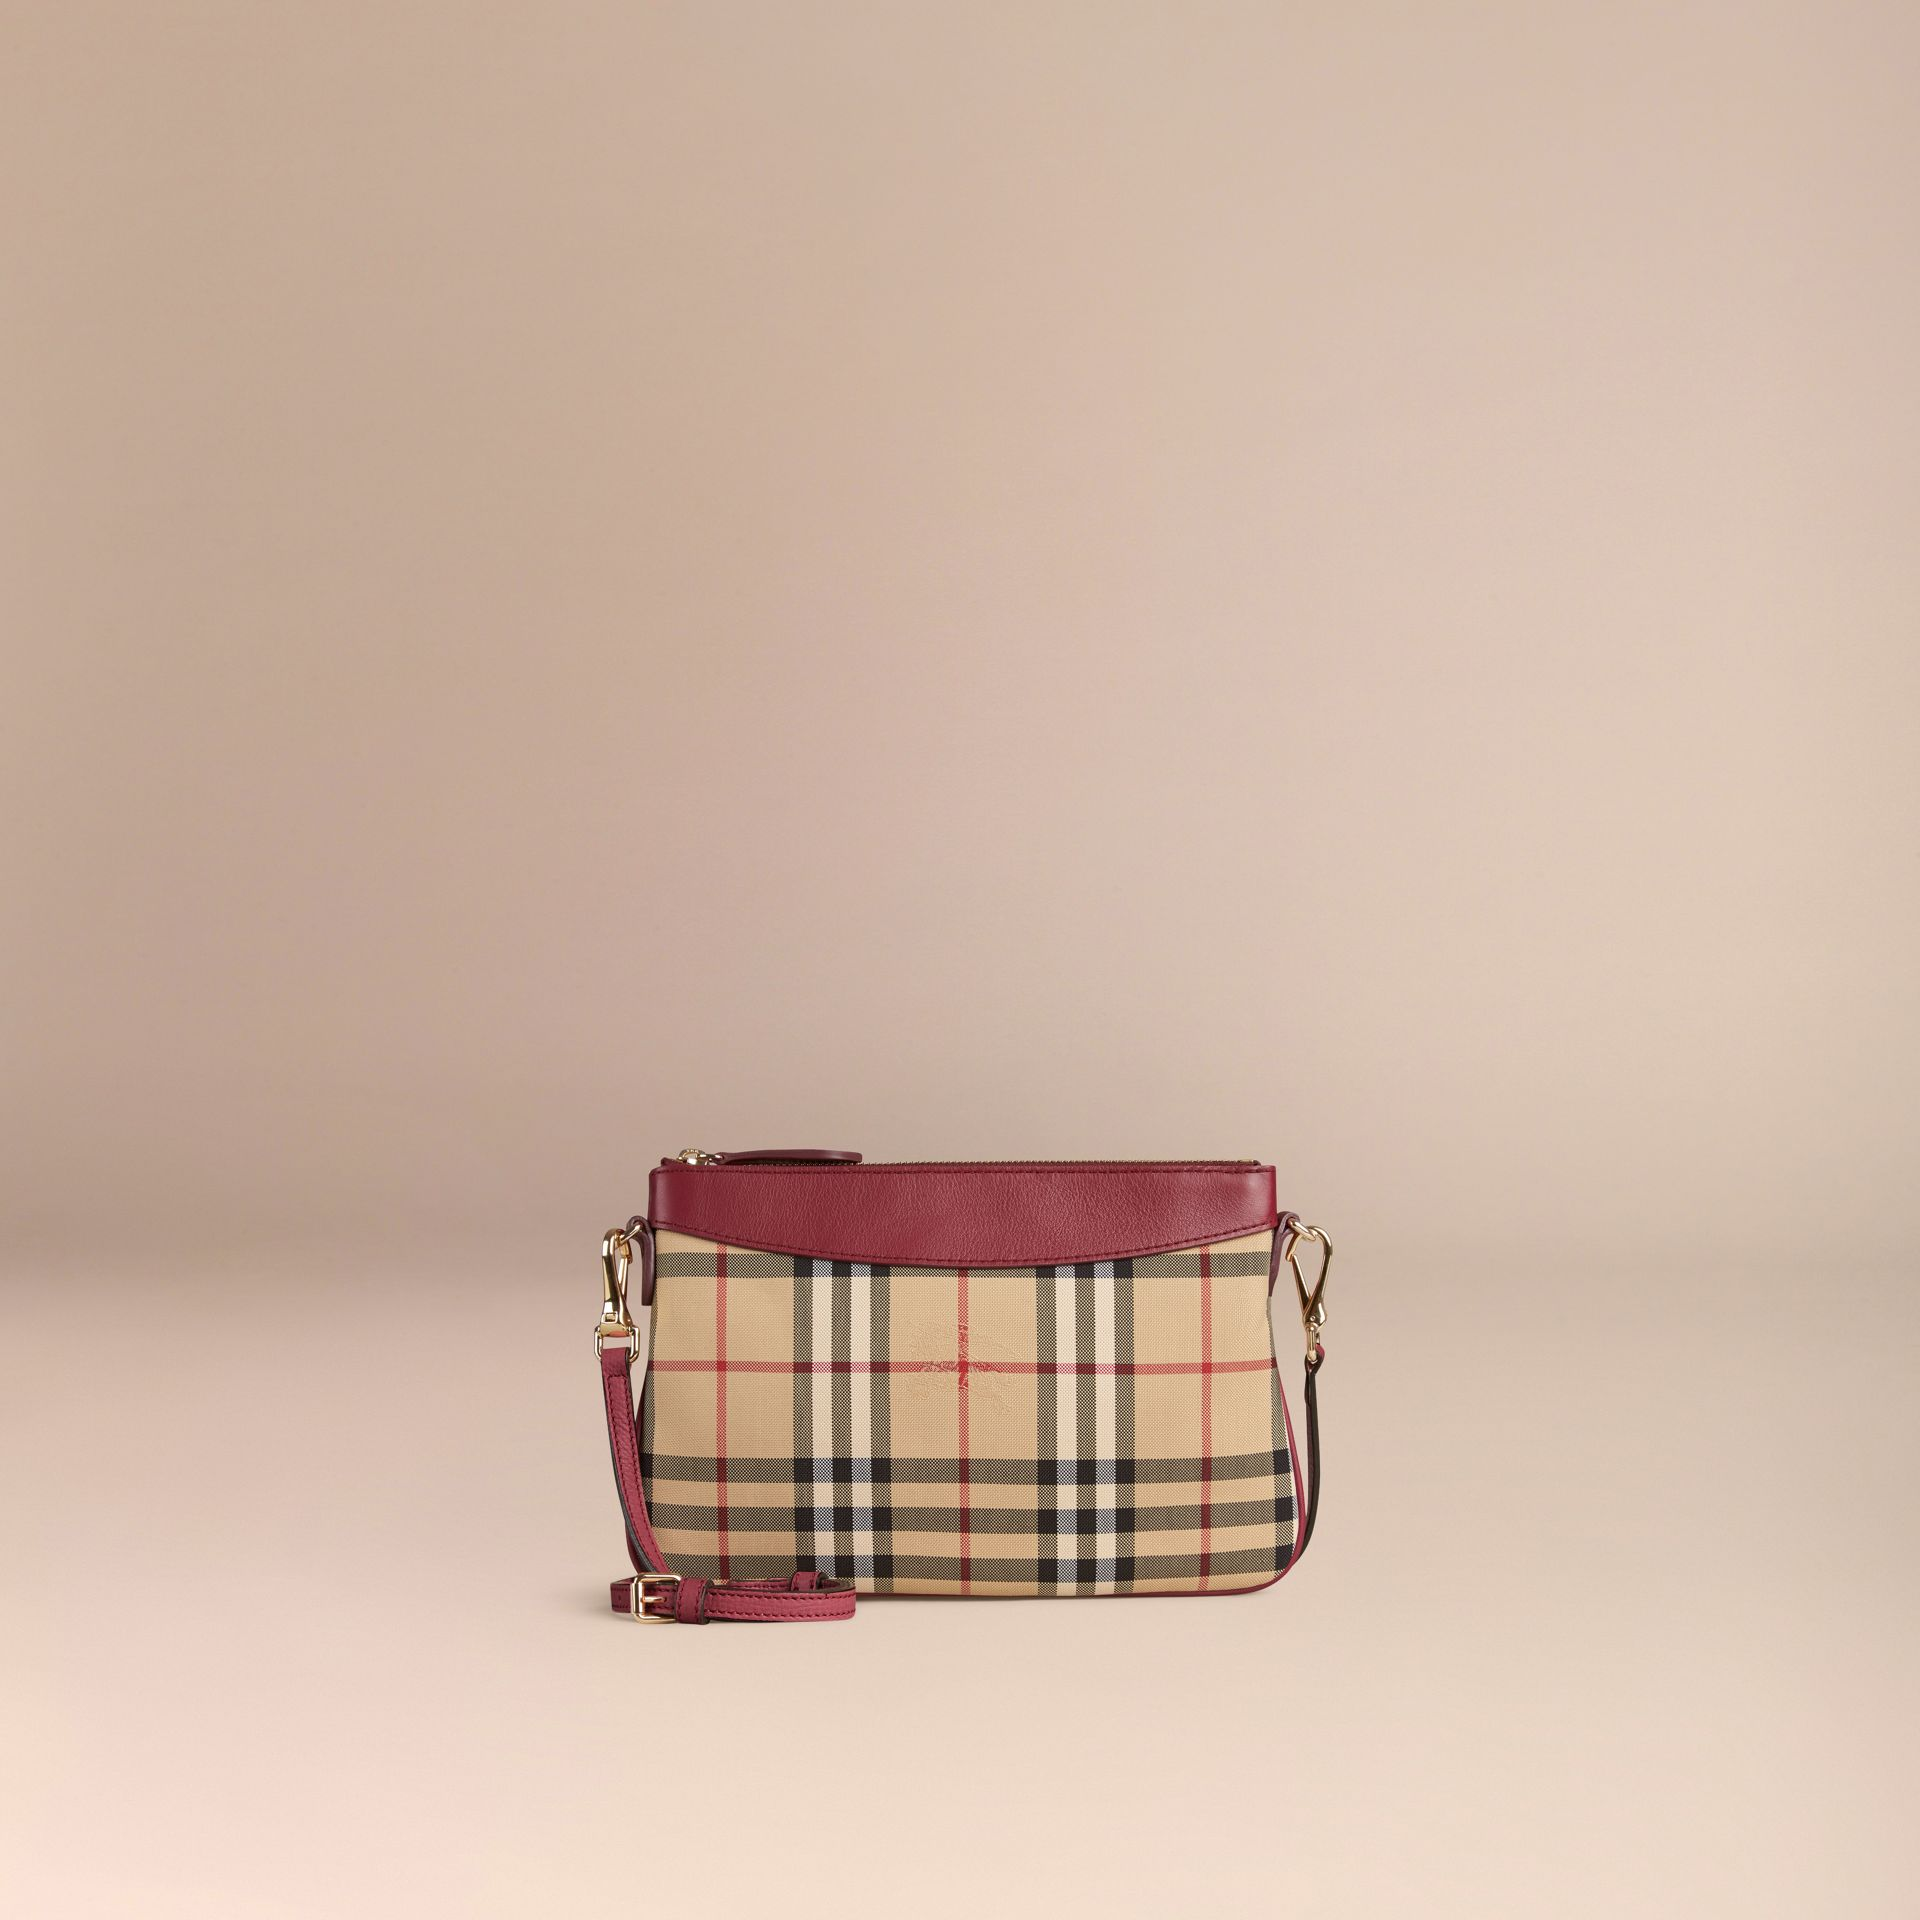 Dark plum Horseferry Check and Leather Clutch Bag Dark Plum - gallery image 7